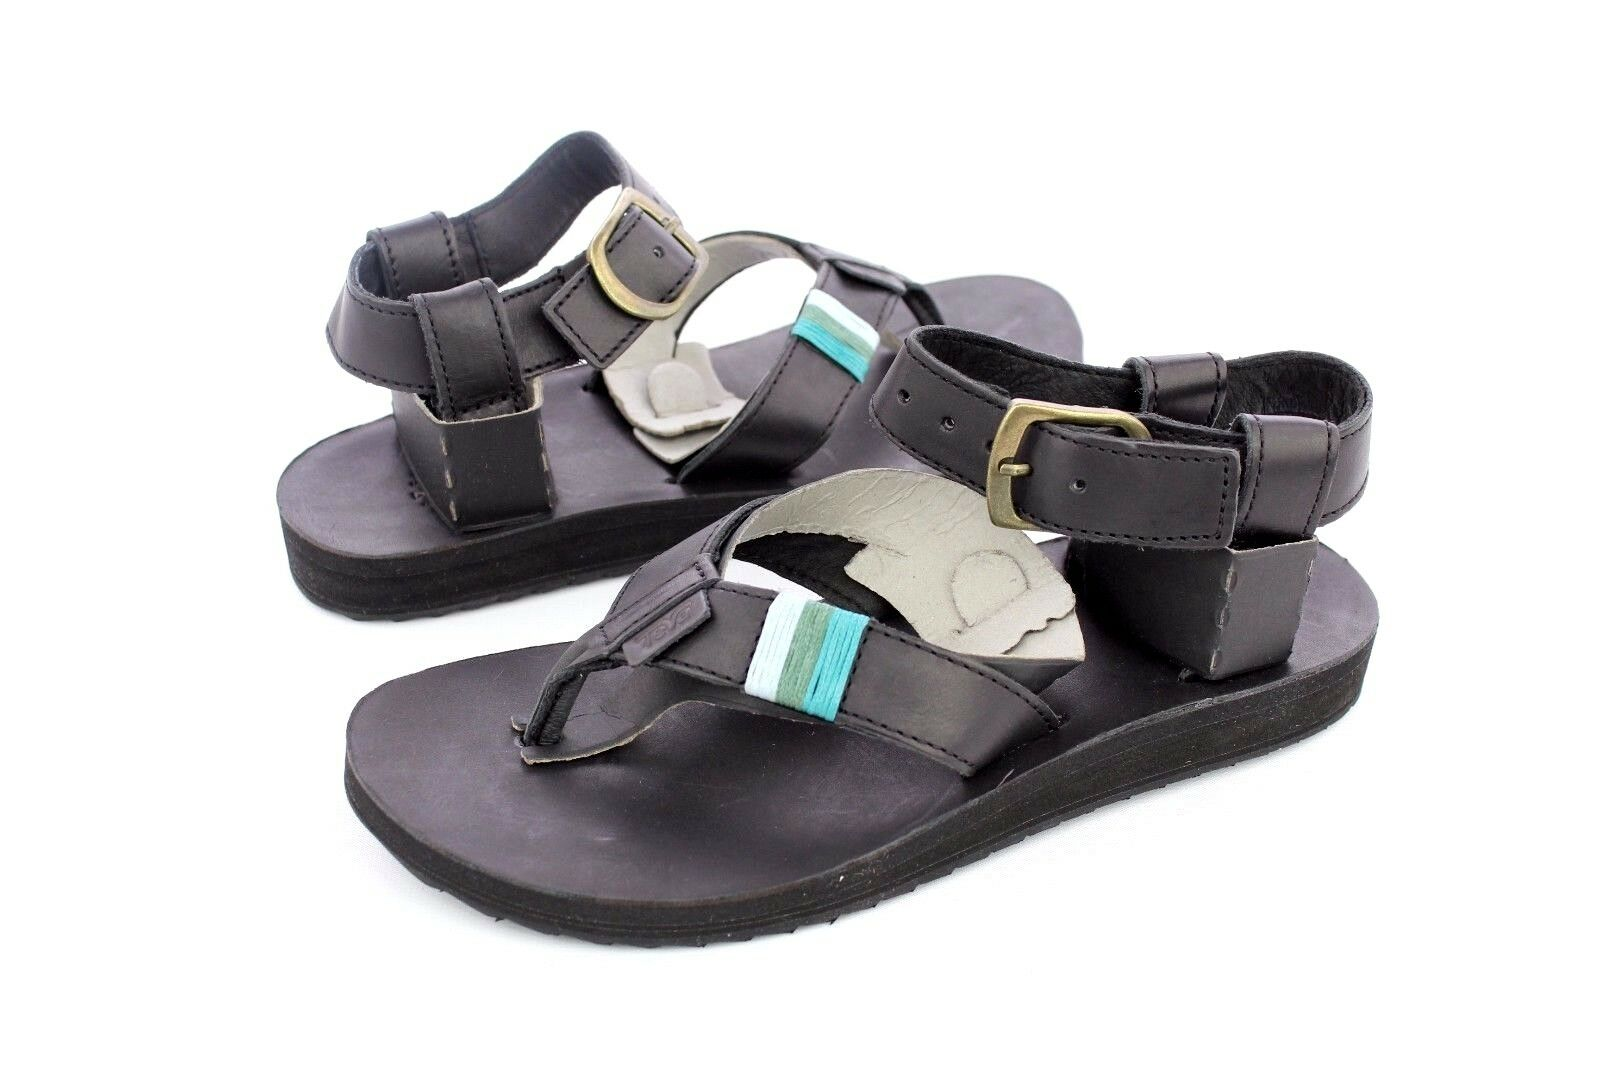 TEVA ORIGINAL SANDALS CRAFTED LEATHER BLACK WOMENS SANDALS SIZE 6 US